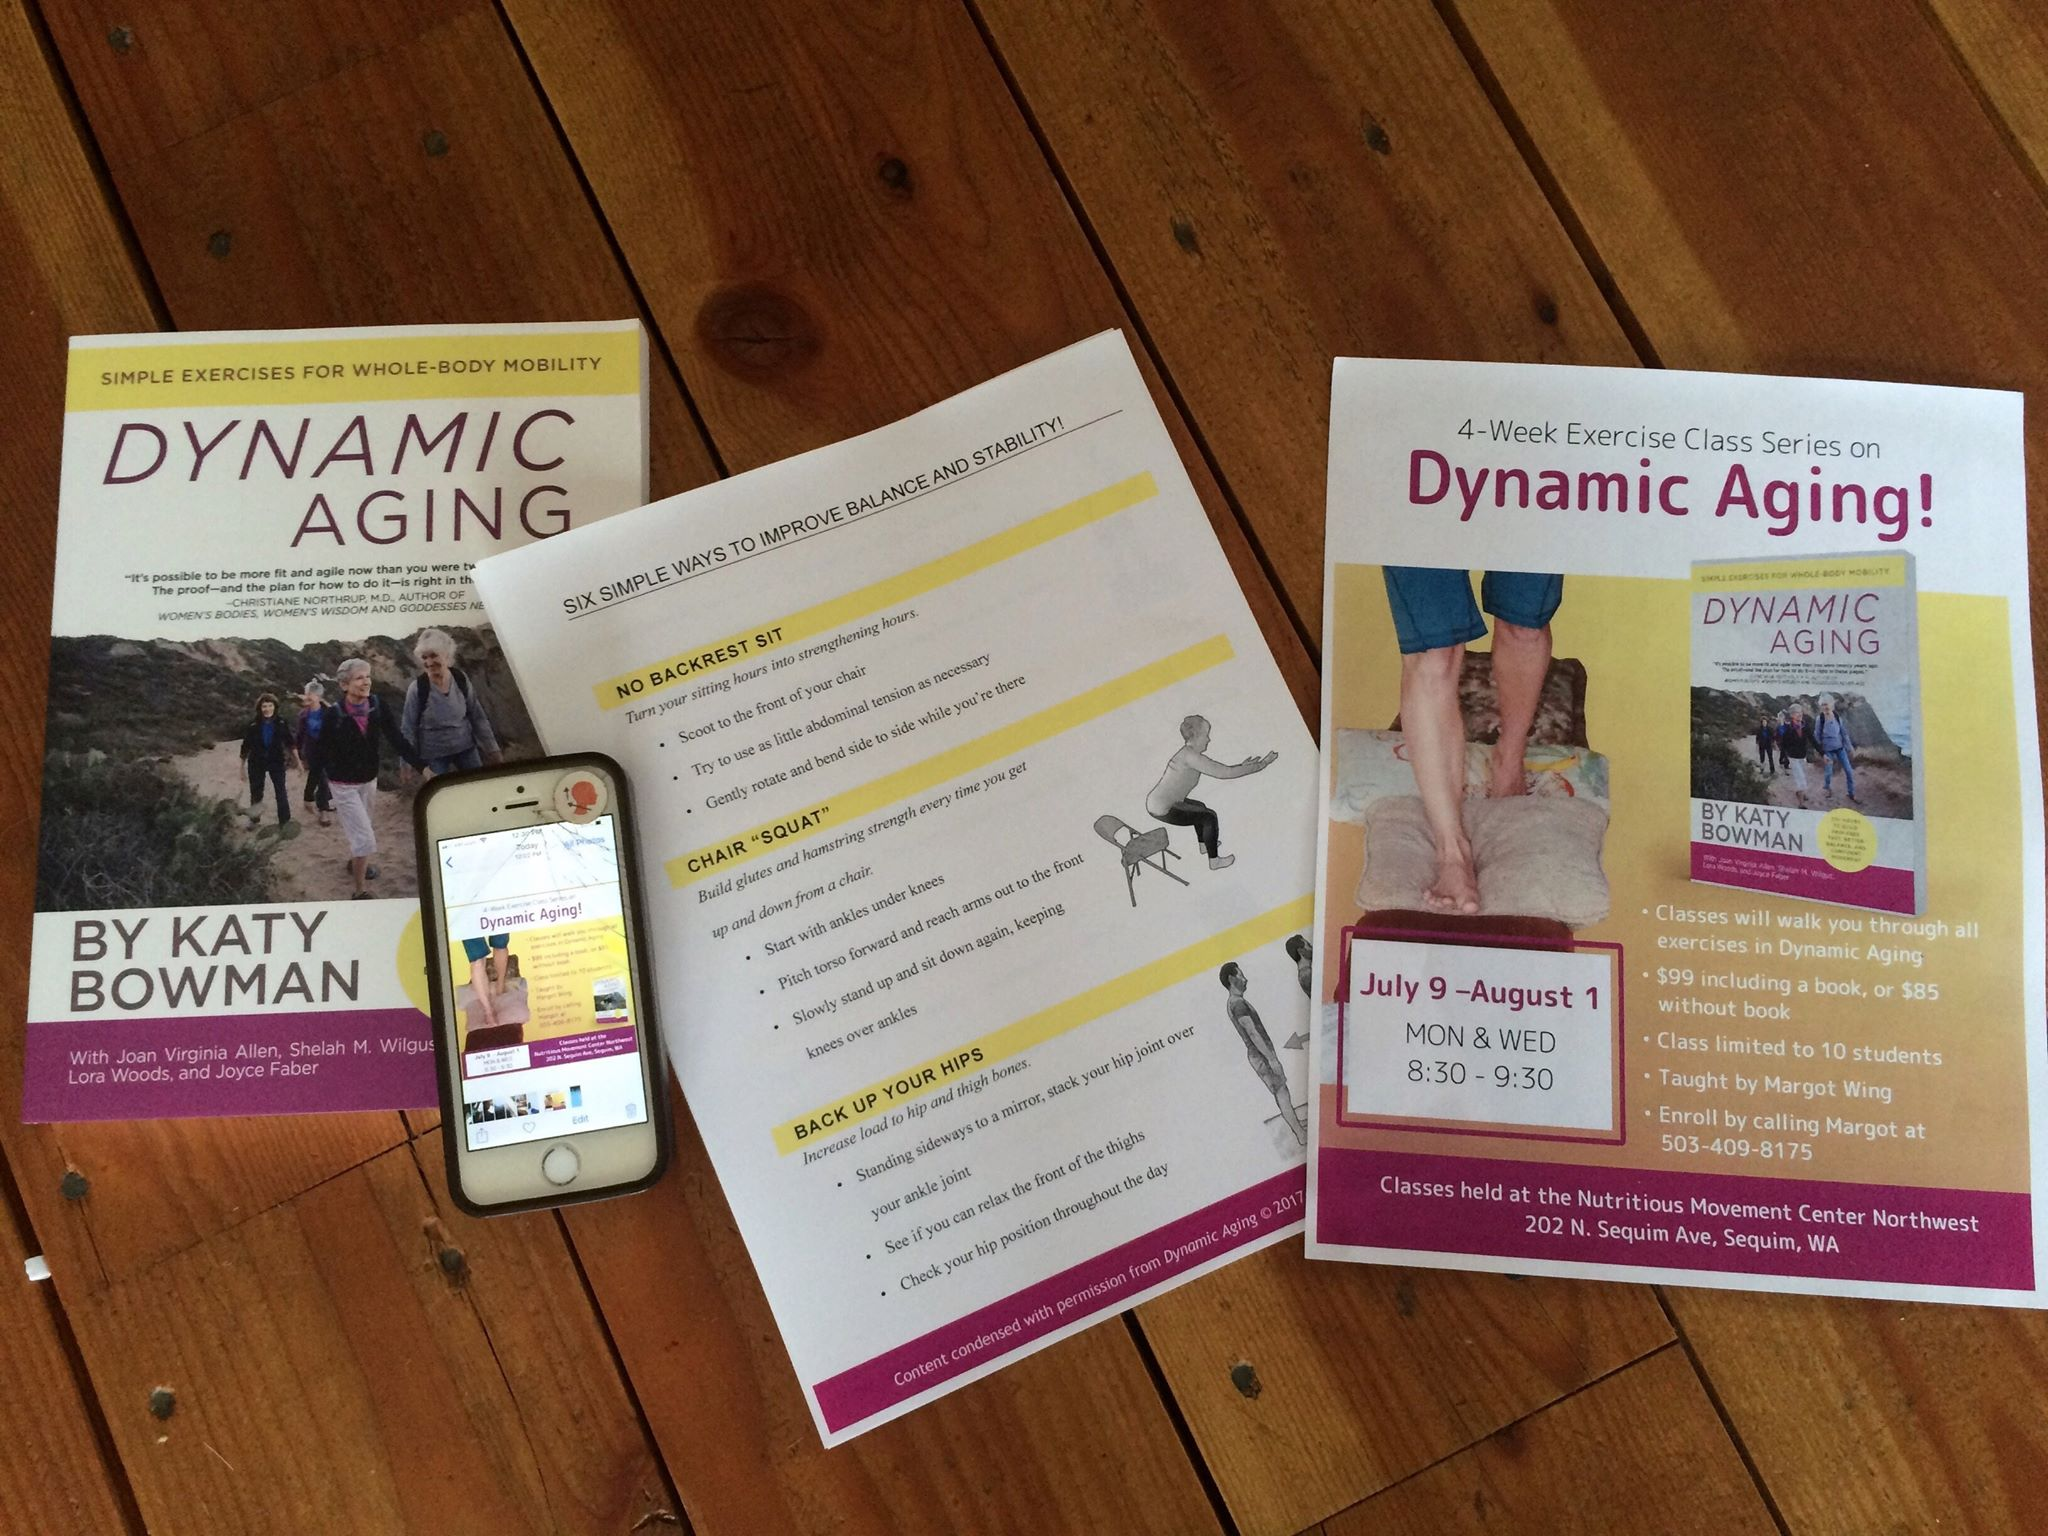 Dynamic Ageing - 4 Week Exercise Class Series